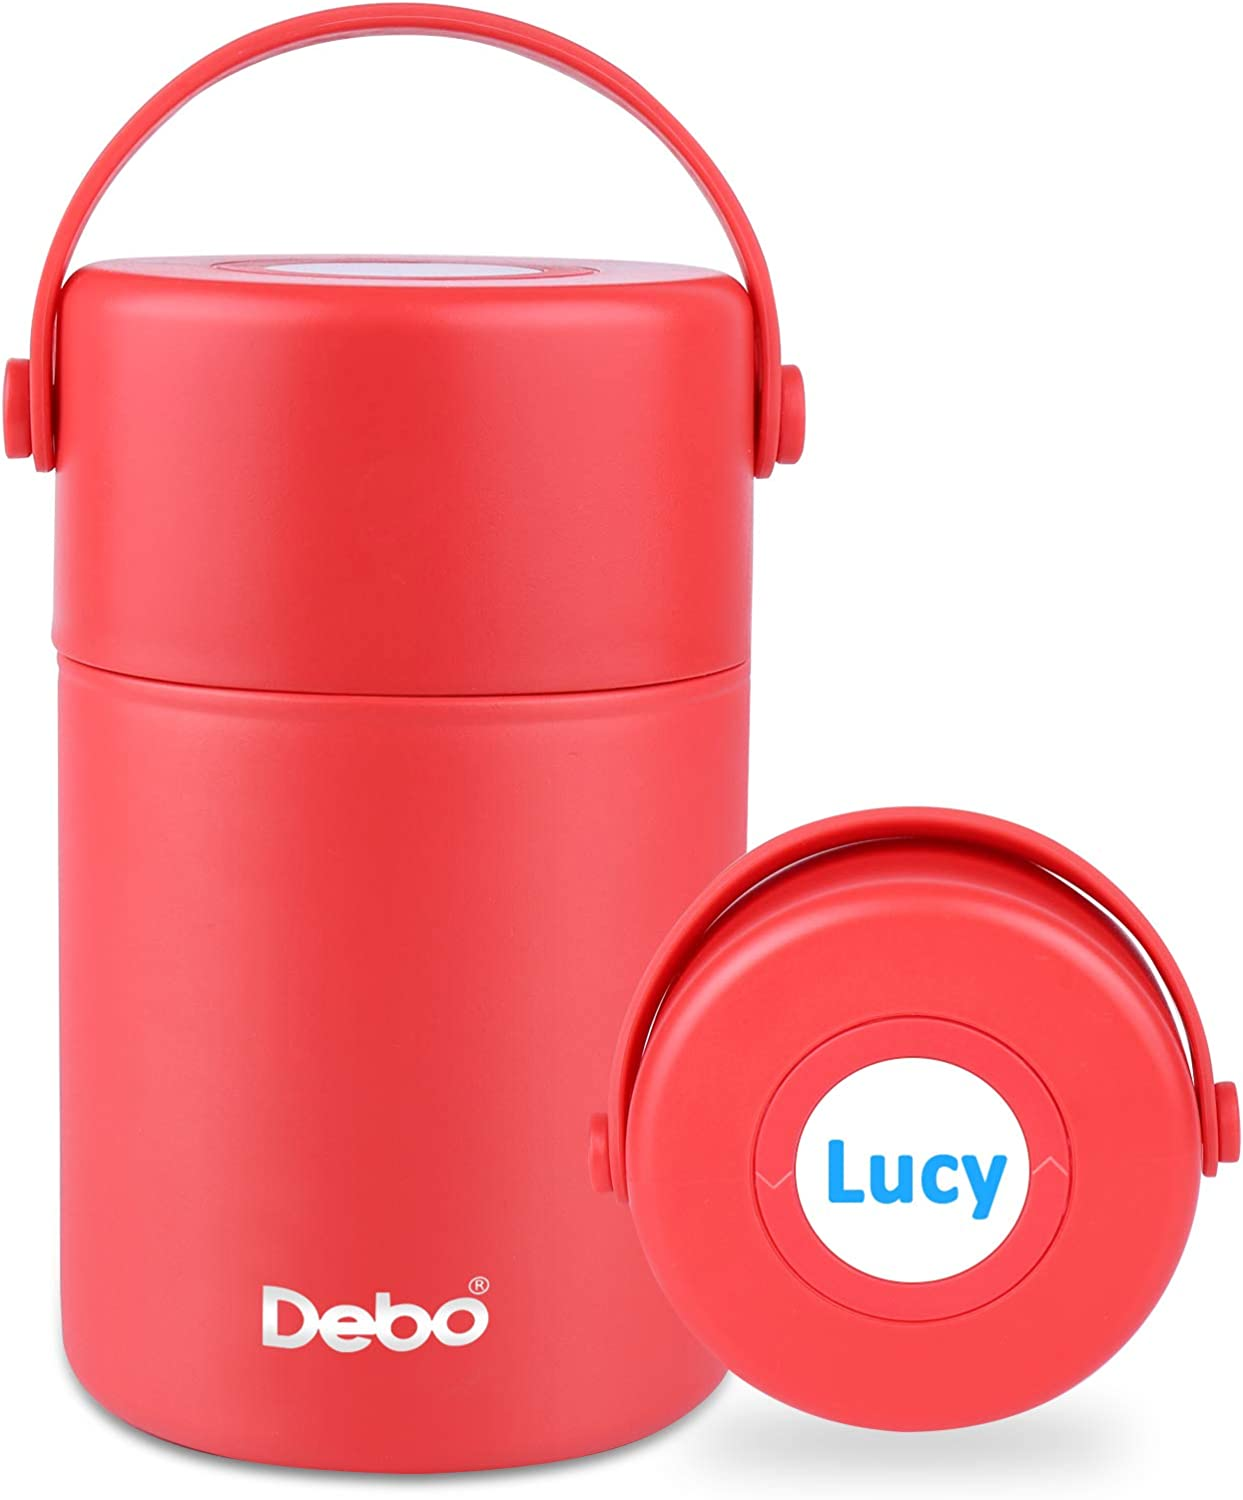 Debo Soup Thermos Bpa-Free 18/8 Stainless Steel Keeps Food Liquid Hot Or Cold for 24 Hours 27 Ounce Thermos Food Jar for Women and Kids Thermos for Hot Food